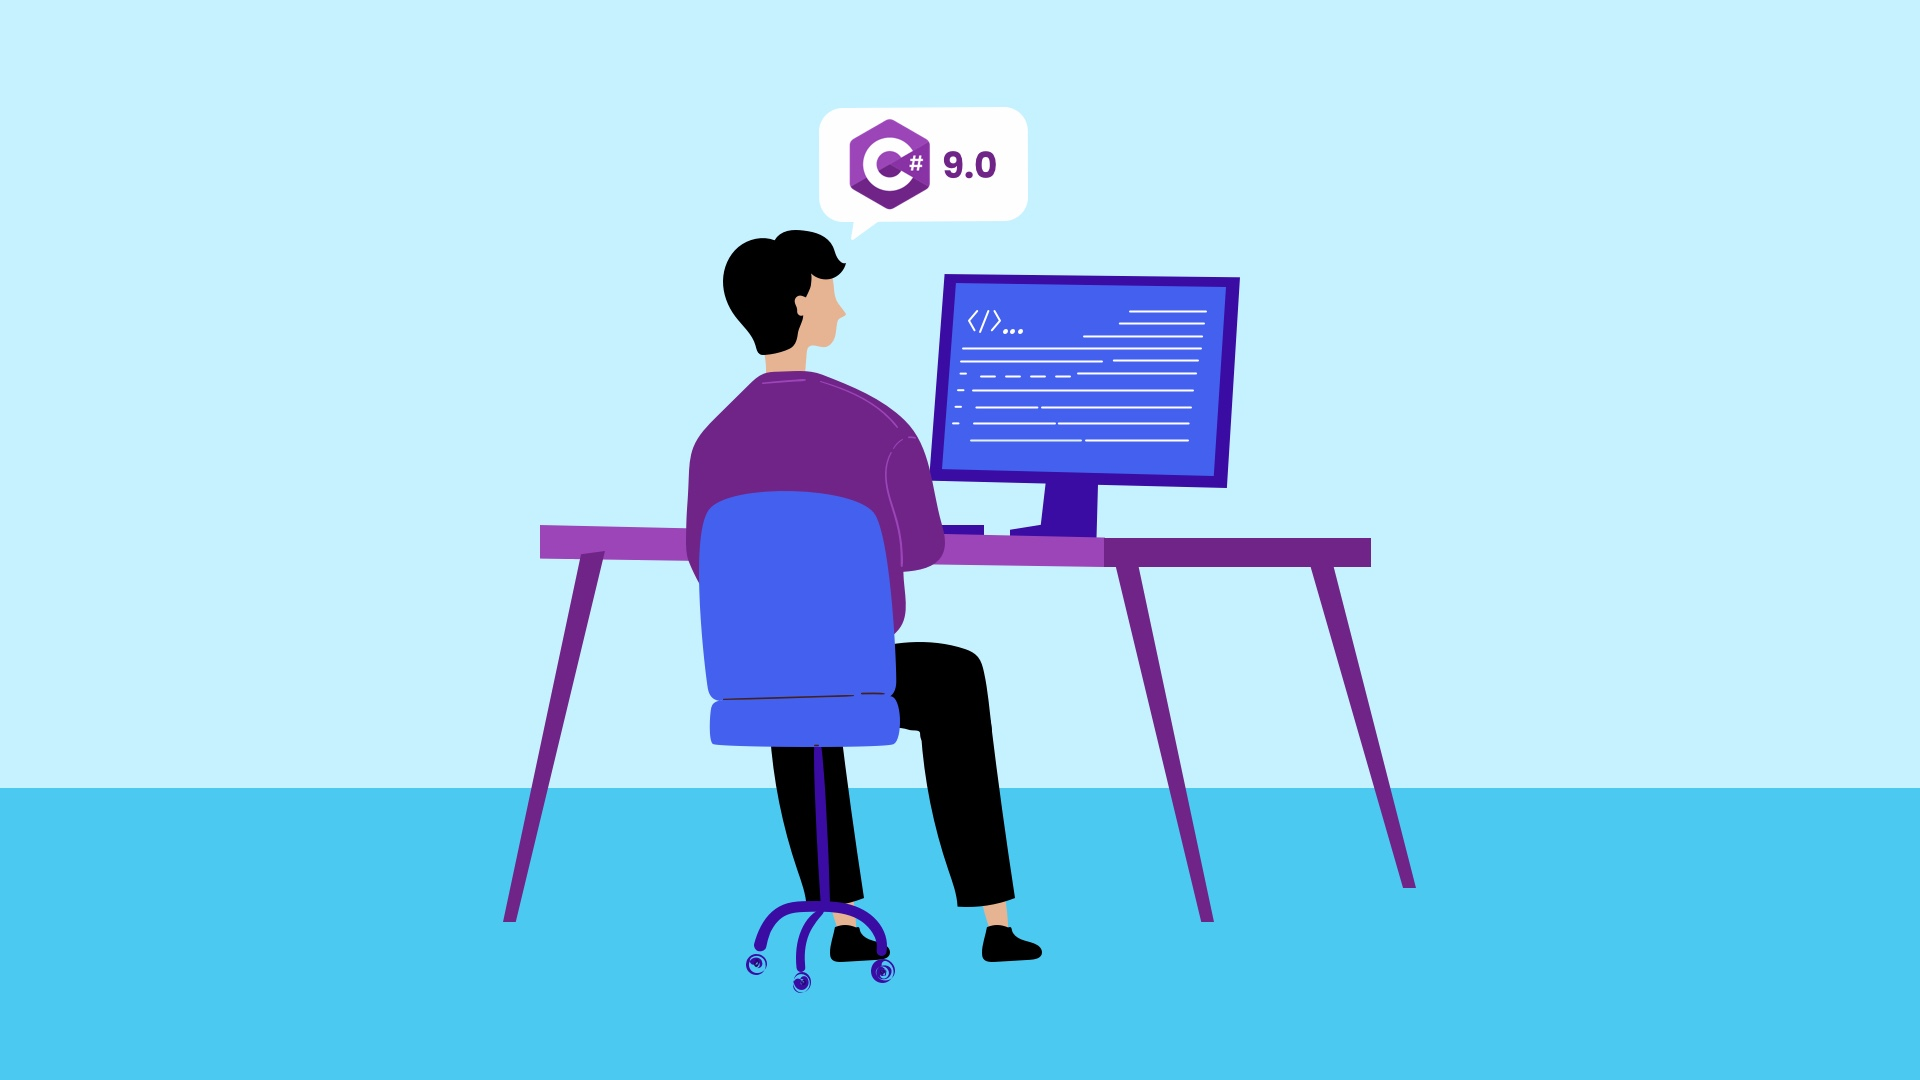 Features of C# 9.0